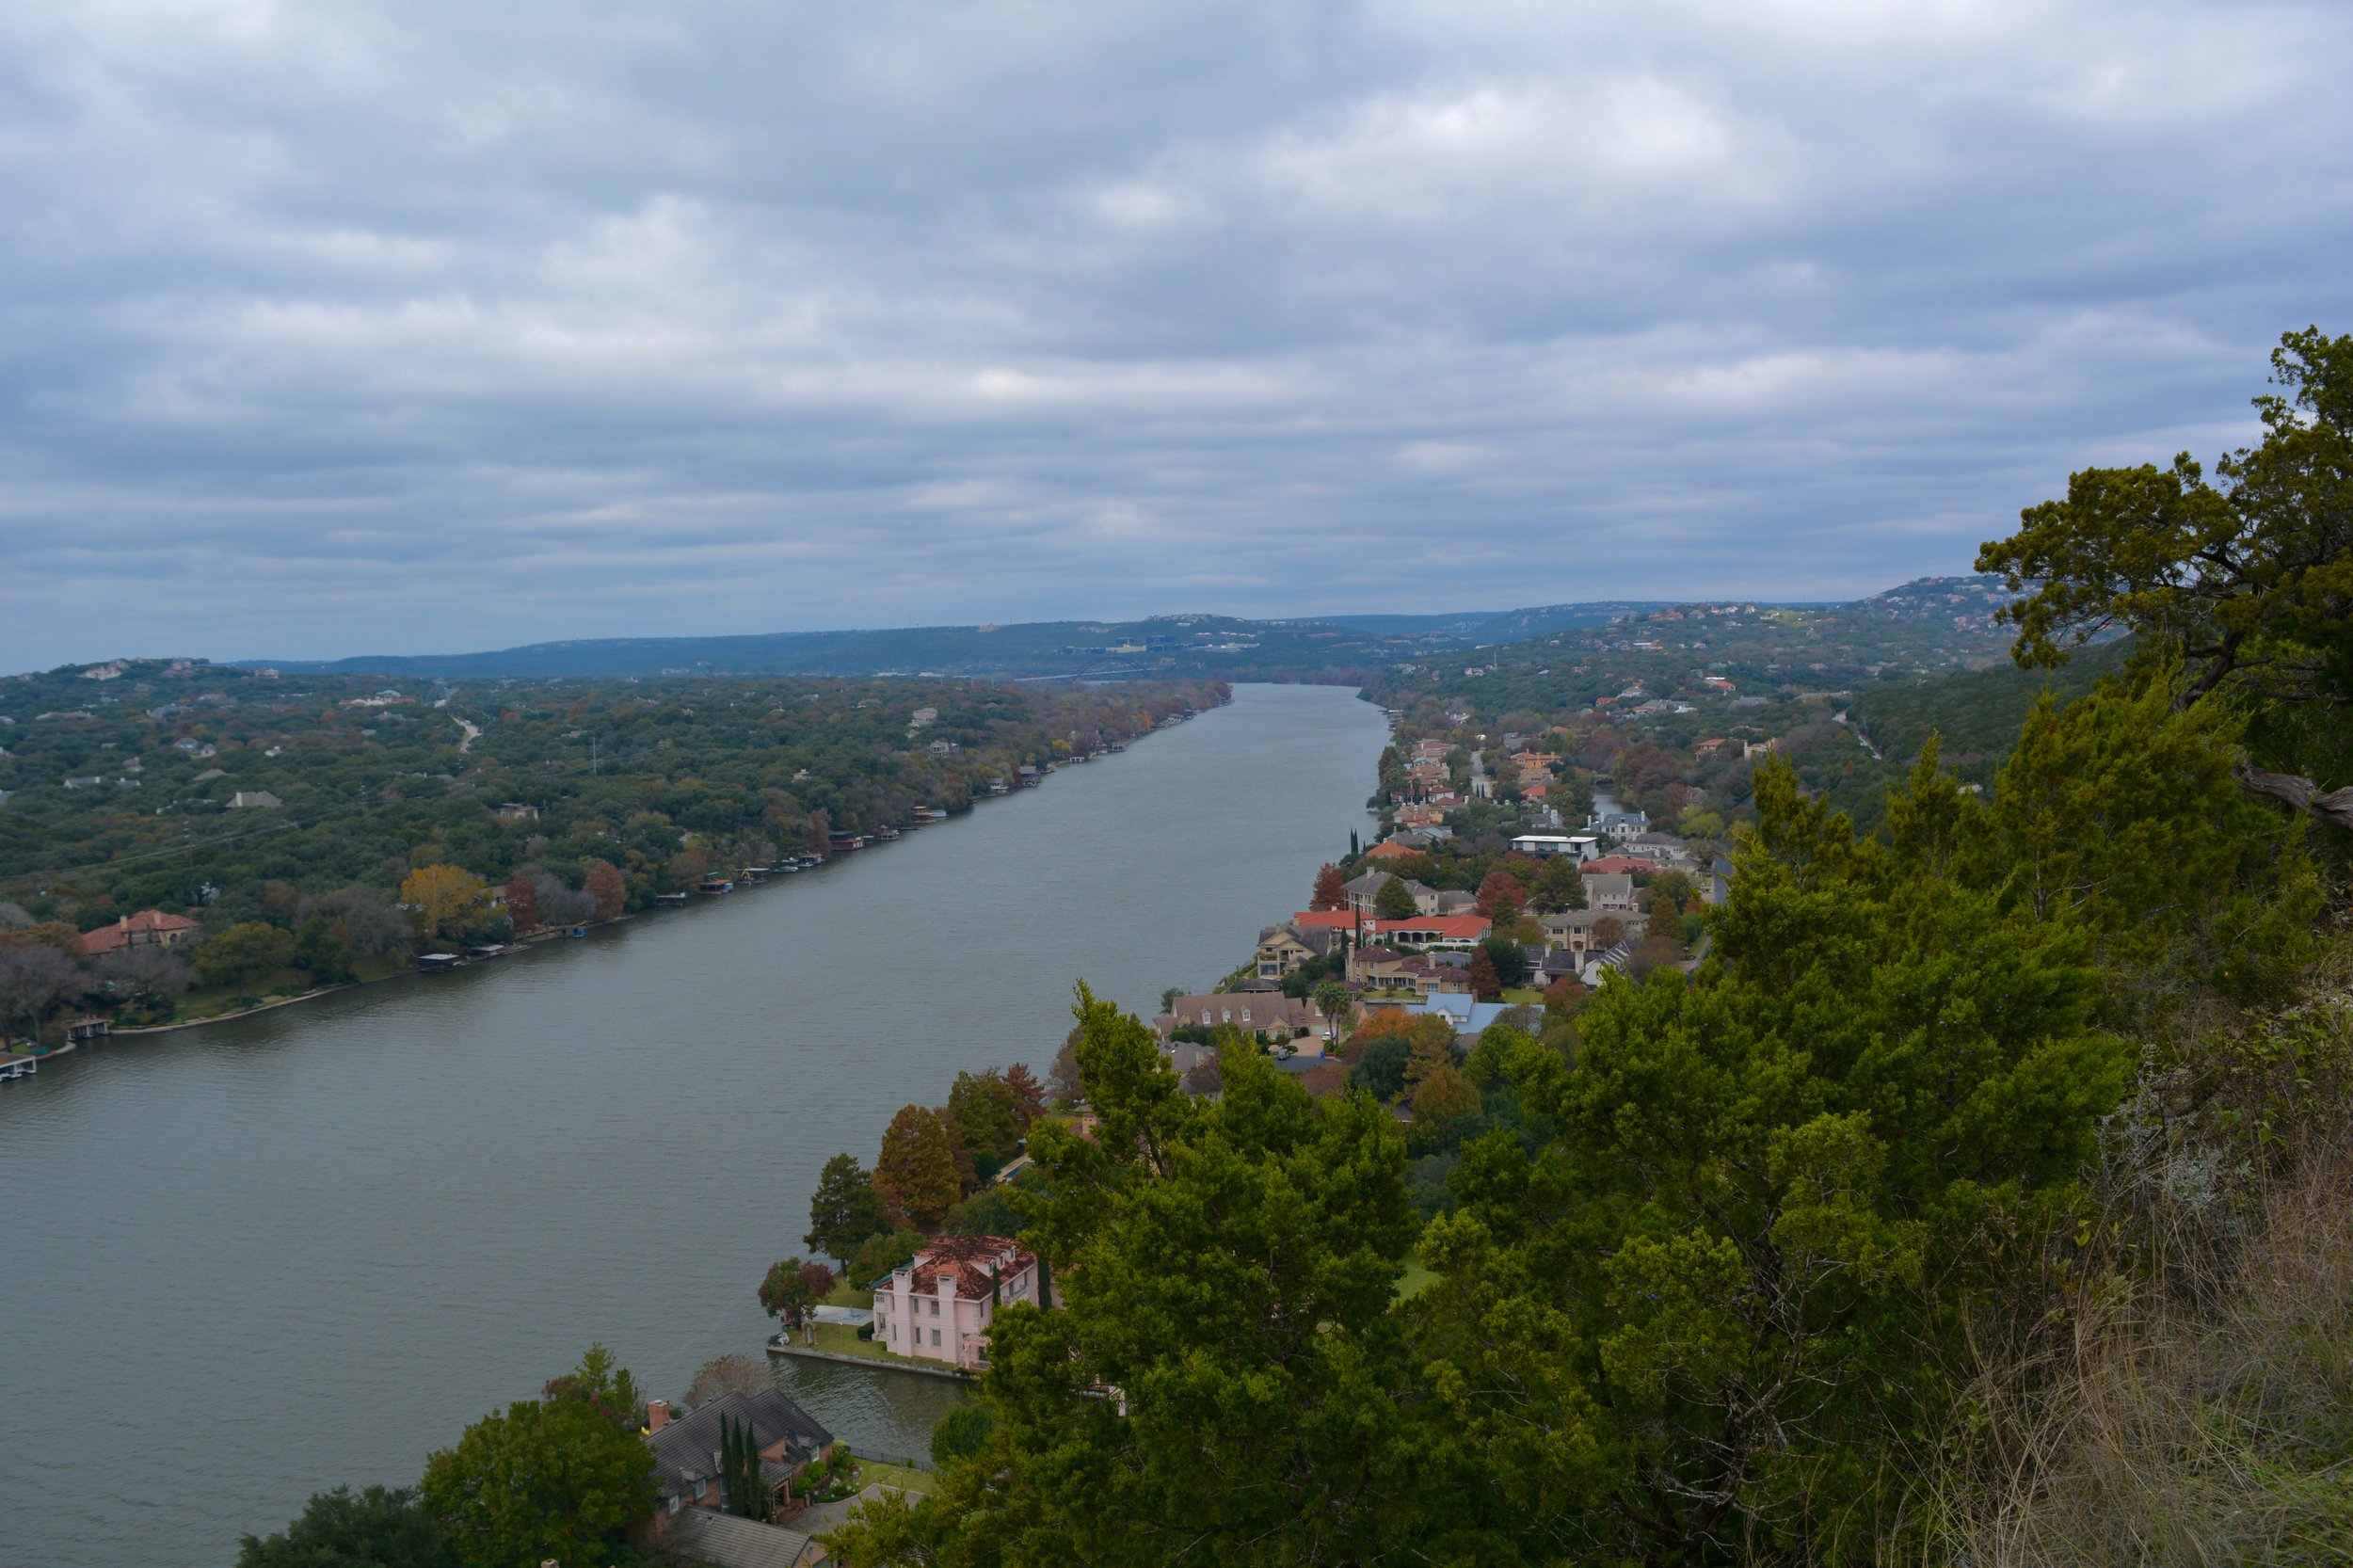 A view from Mt. Bonnell